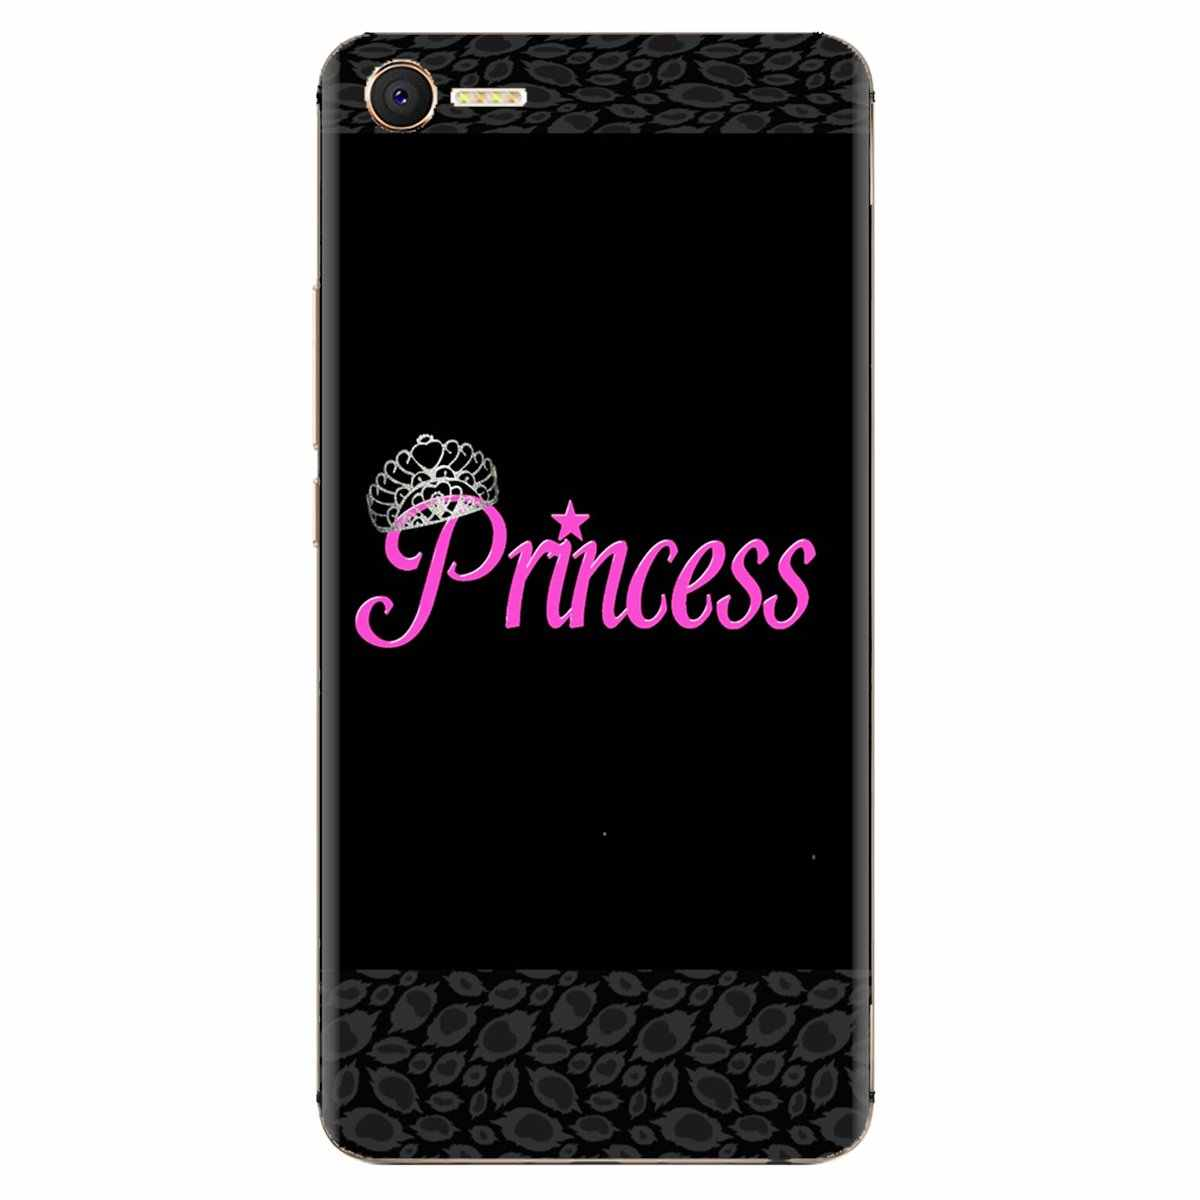 pink Crown Princess Personalized Silicone Phone Case For Samsung Galaxy J1 J2 J3 J4 J5 J6 J7 J8 Plus 2018 Prime 2015 2016 2017